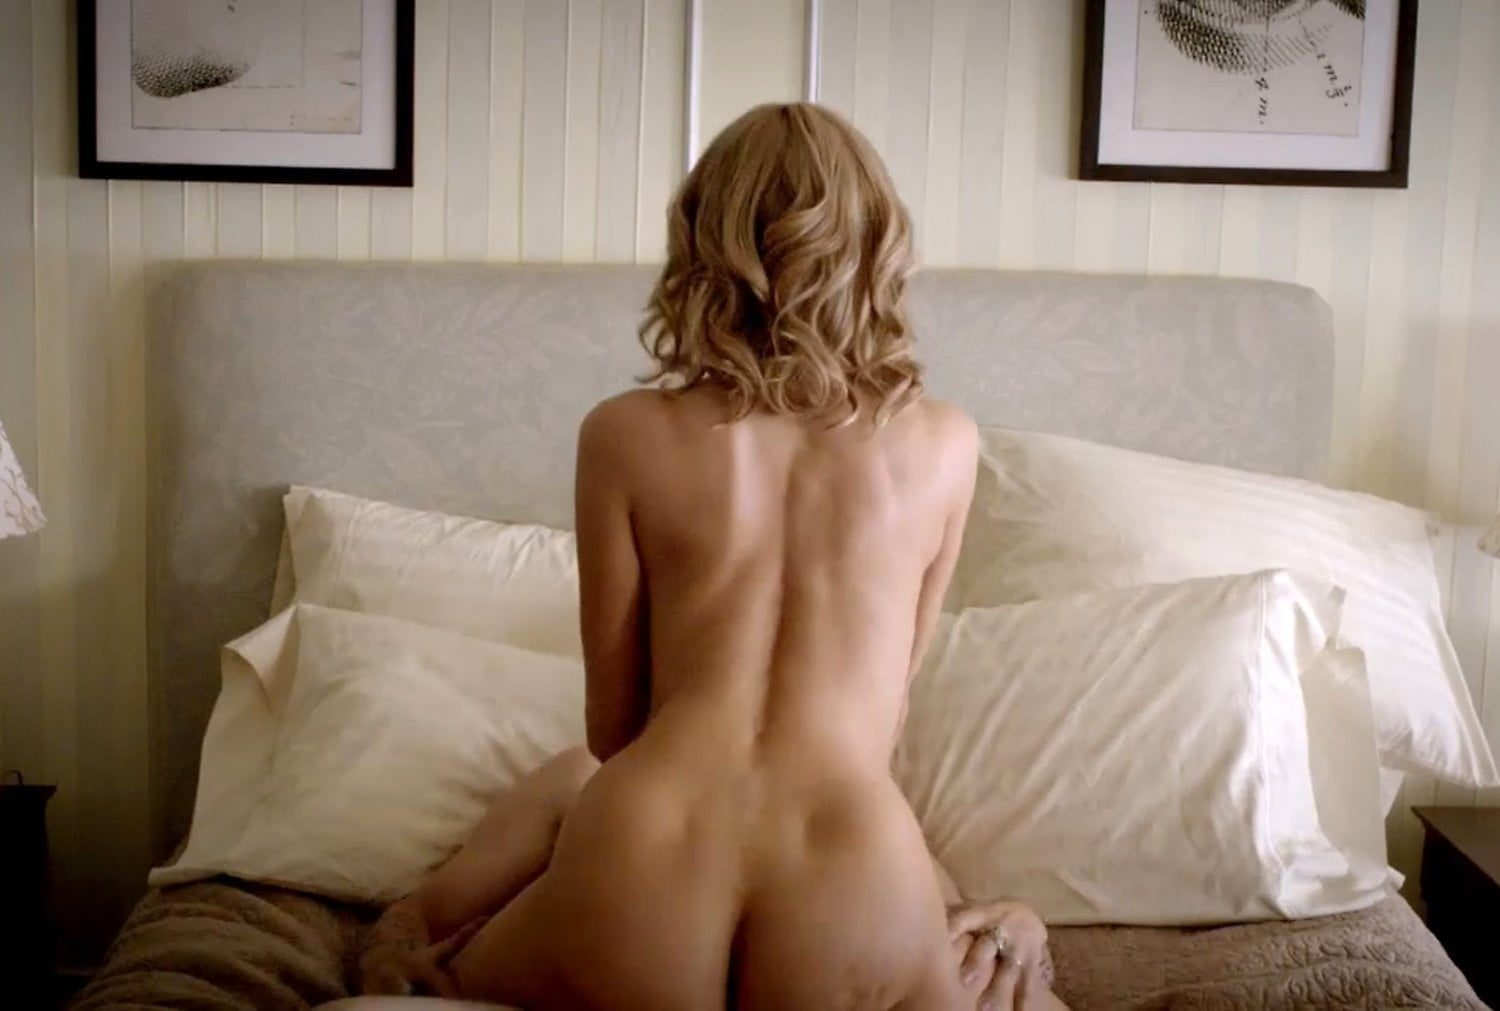 Amy Hargreaves Sex kim dickens rides a guy in sons of anarchy scandalplanet